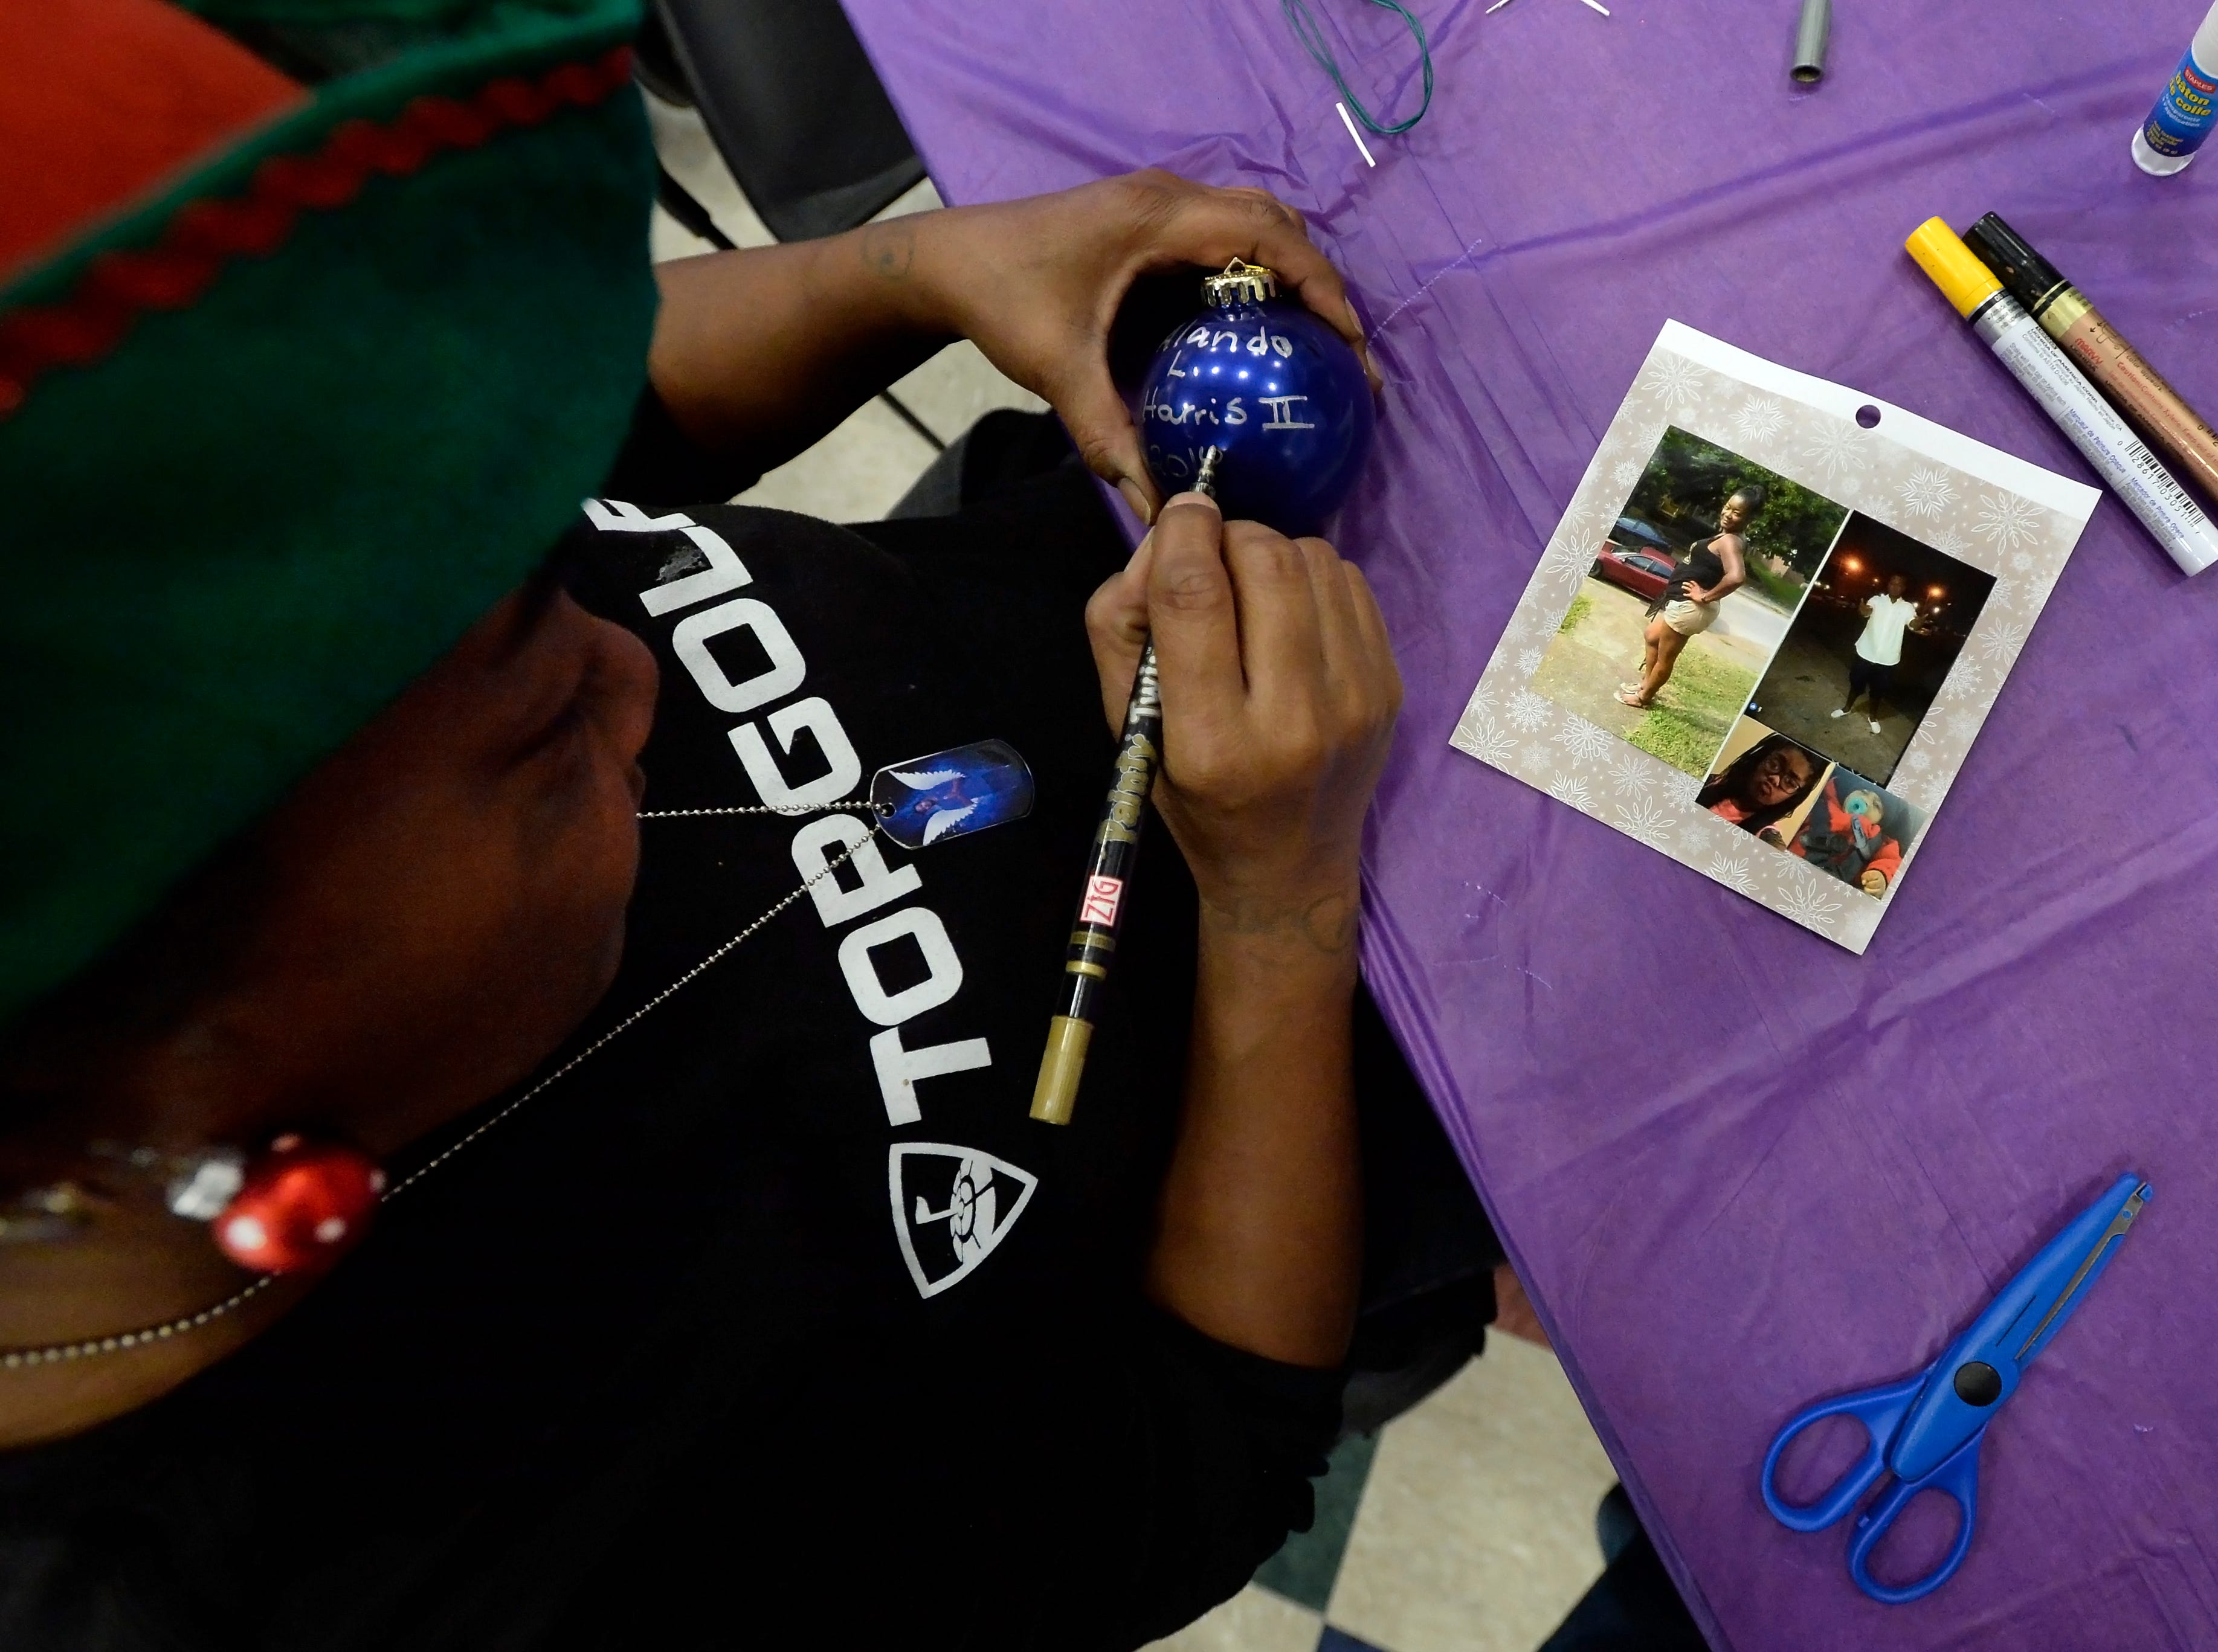 Cherrie Anglin is making a Christmas ornament in memory of her son, Alando Harris II, at the Metro Police Department's North Precinct on Tuesday, Dec. 11, 2018, in Nashville, Tenn. The Victim Intervention Program is a community outreach program through the police department.